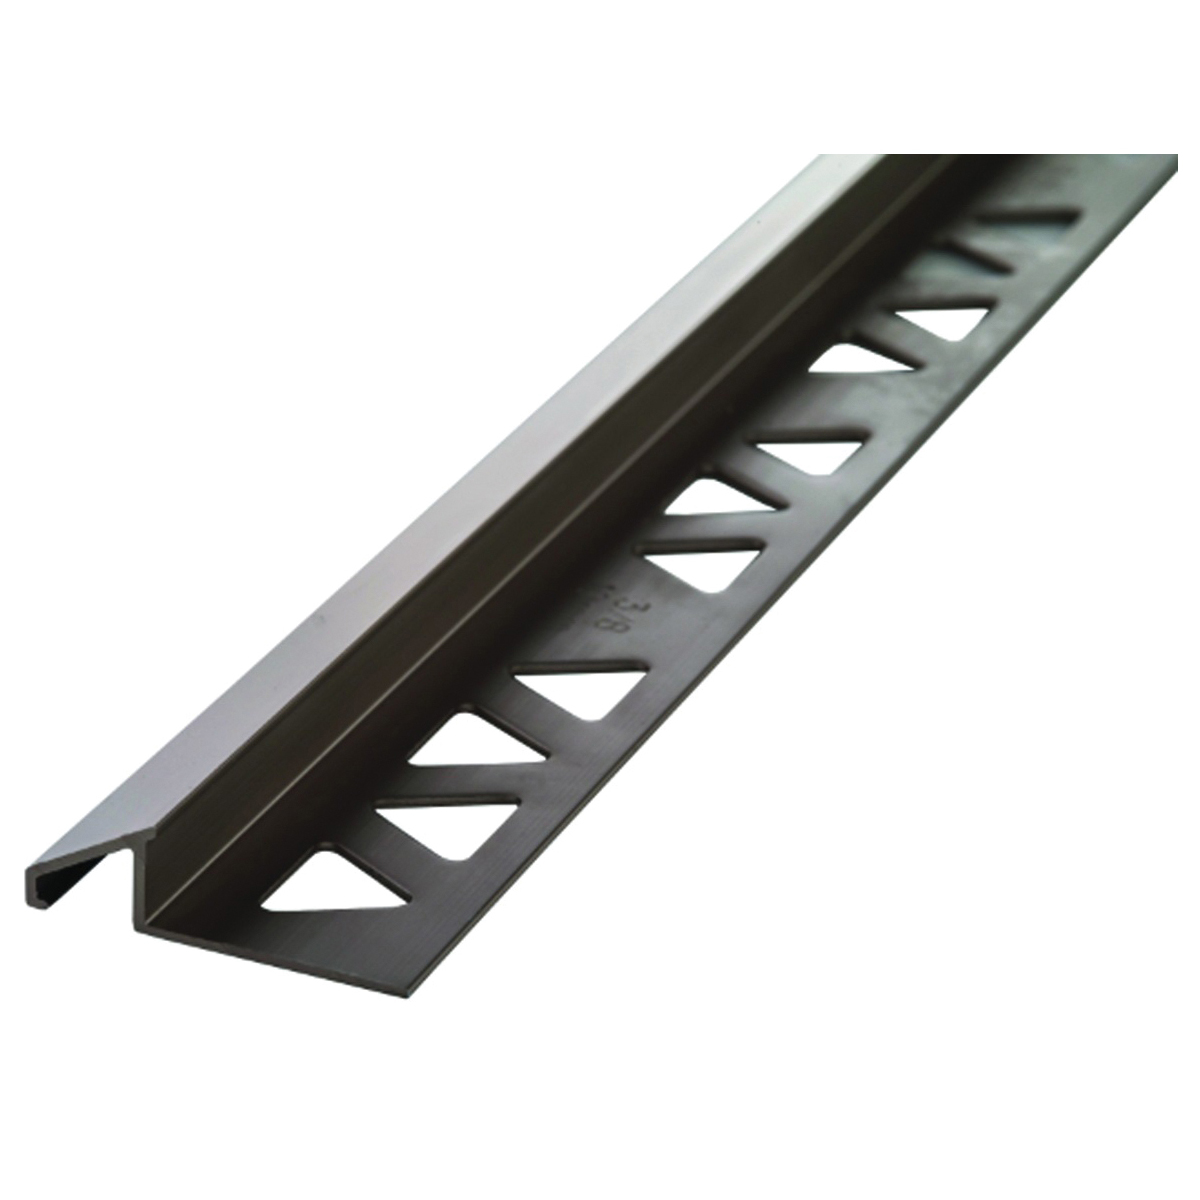 Picture of M-D 31360 Tile Reducer, 8 ft L, 1-1/8 in W, Aluminum, Pewter